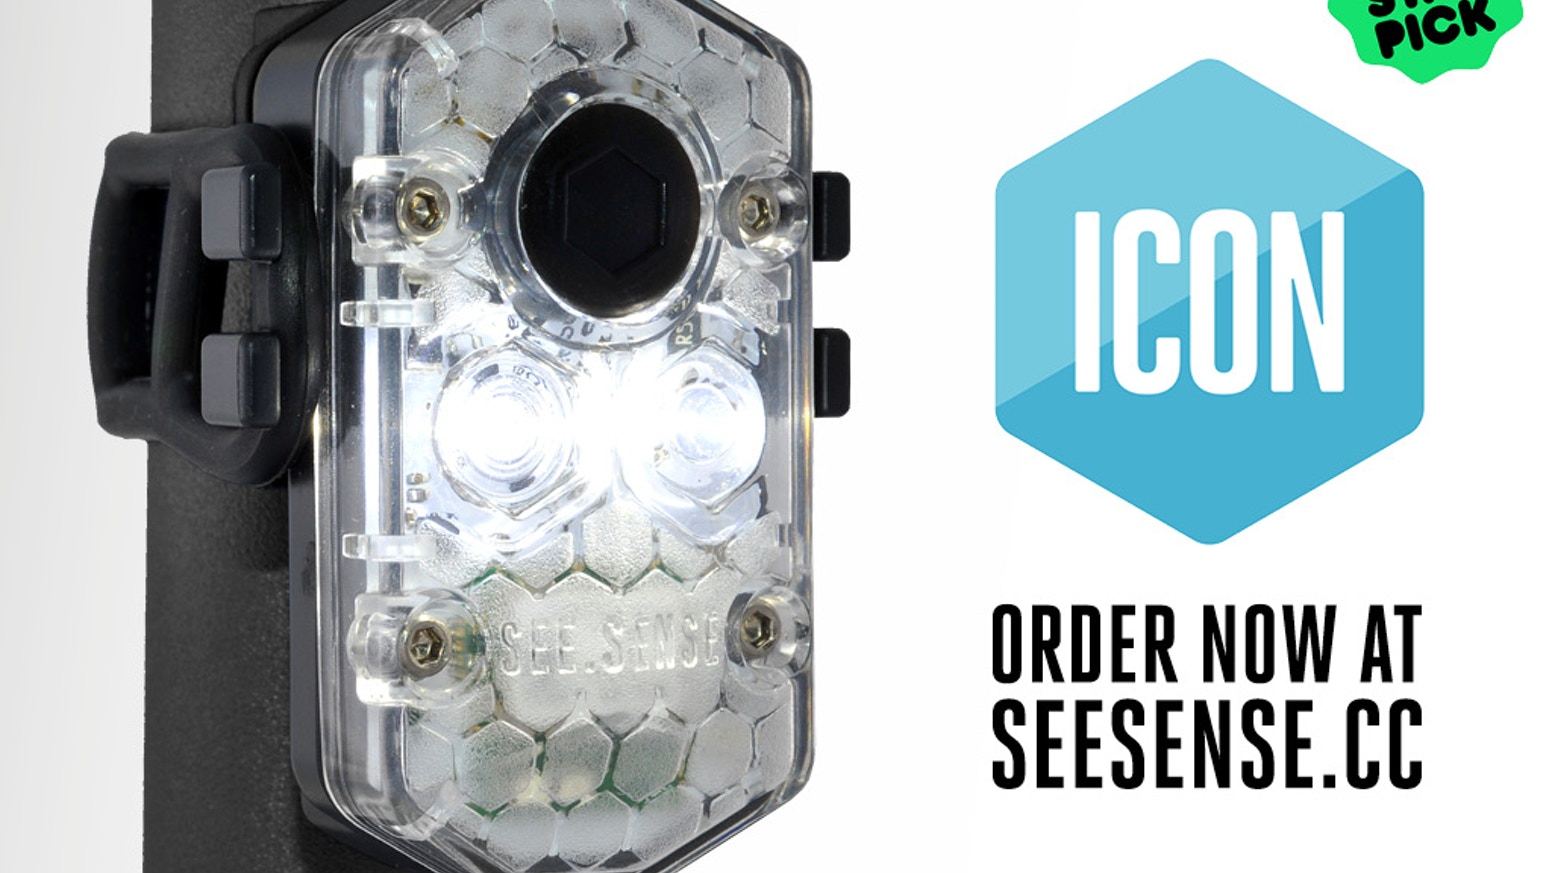 See Sense ICON is an industry-leading cycle light that connects you to a world of innovative features through your smartphone.